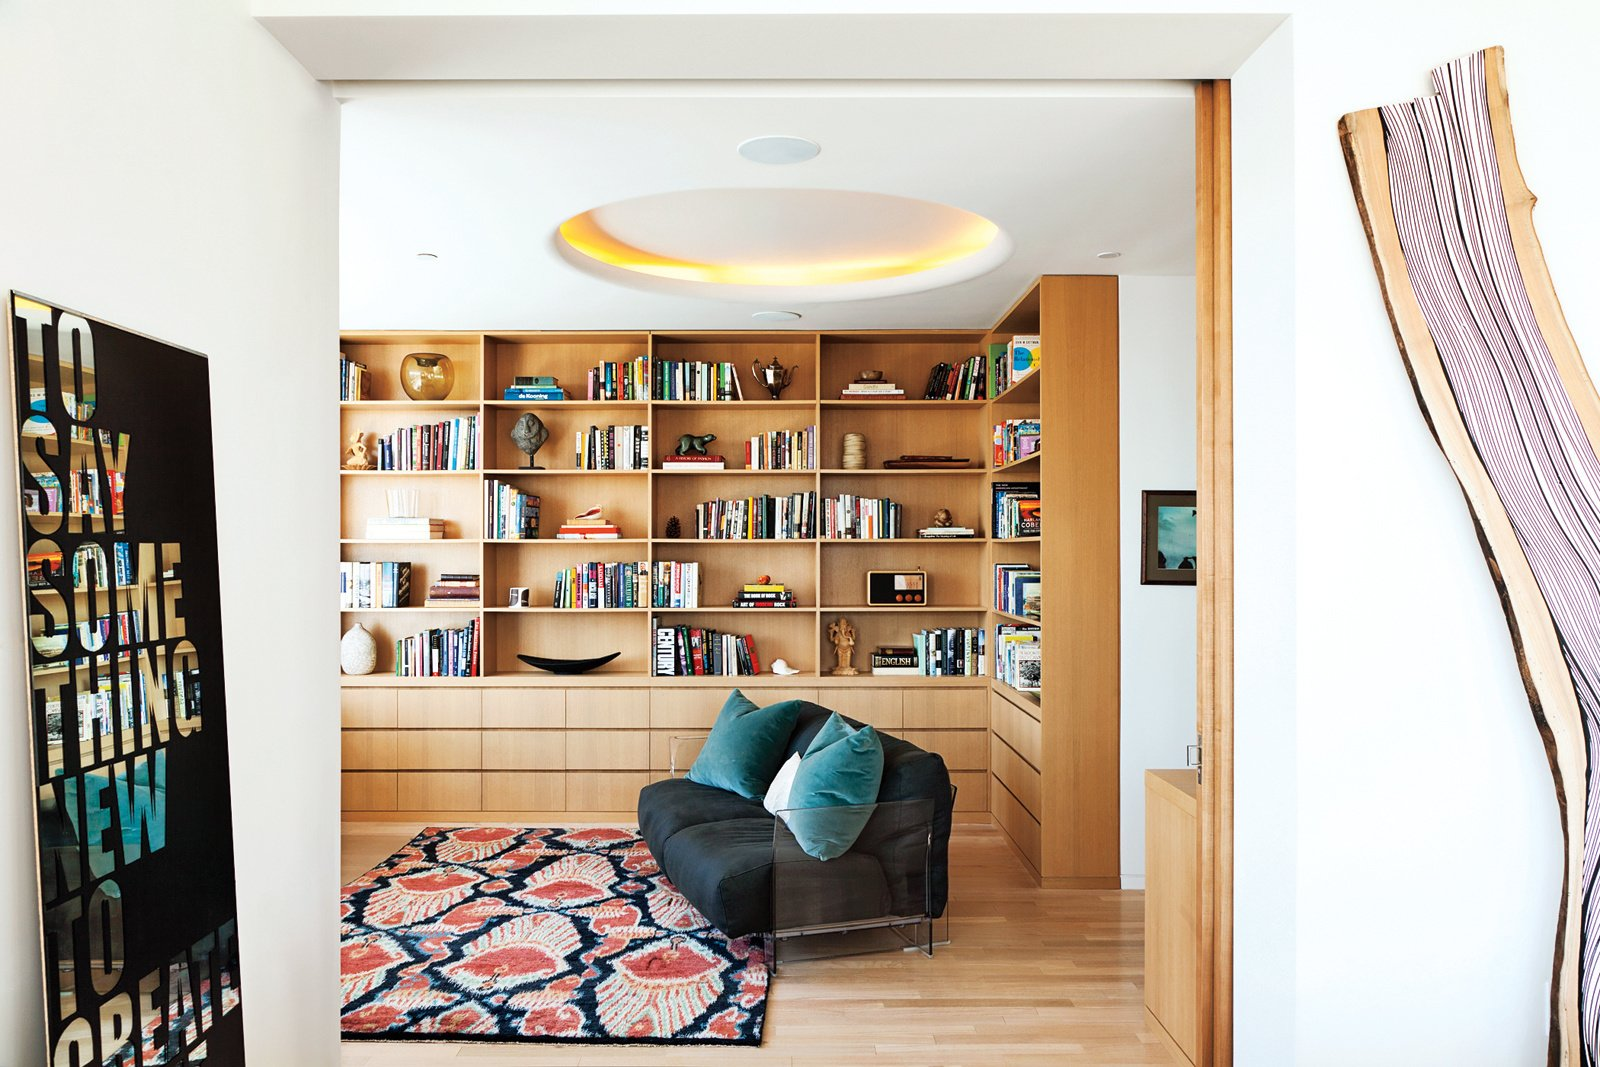 Living Room, Sofa, Rug Floor, Light Hardwood Floor, and Ceiling Lighting Located in West Village, designer Suchi Reddy constructs a modern family-friendly apartment.  Lovely NYC Abodes That Will Give You Apartment Envy by Allie Weiss from A Look Into 5 New York Apartments